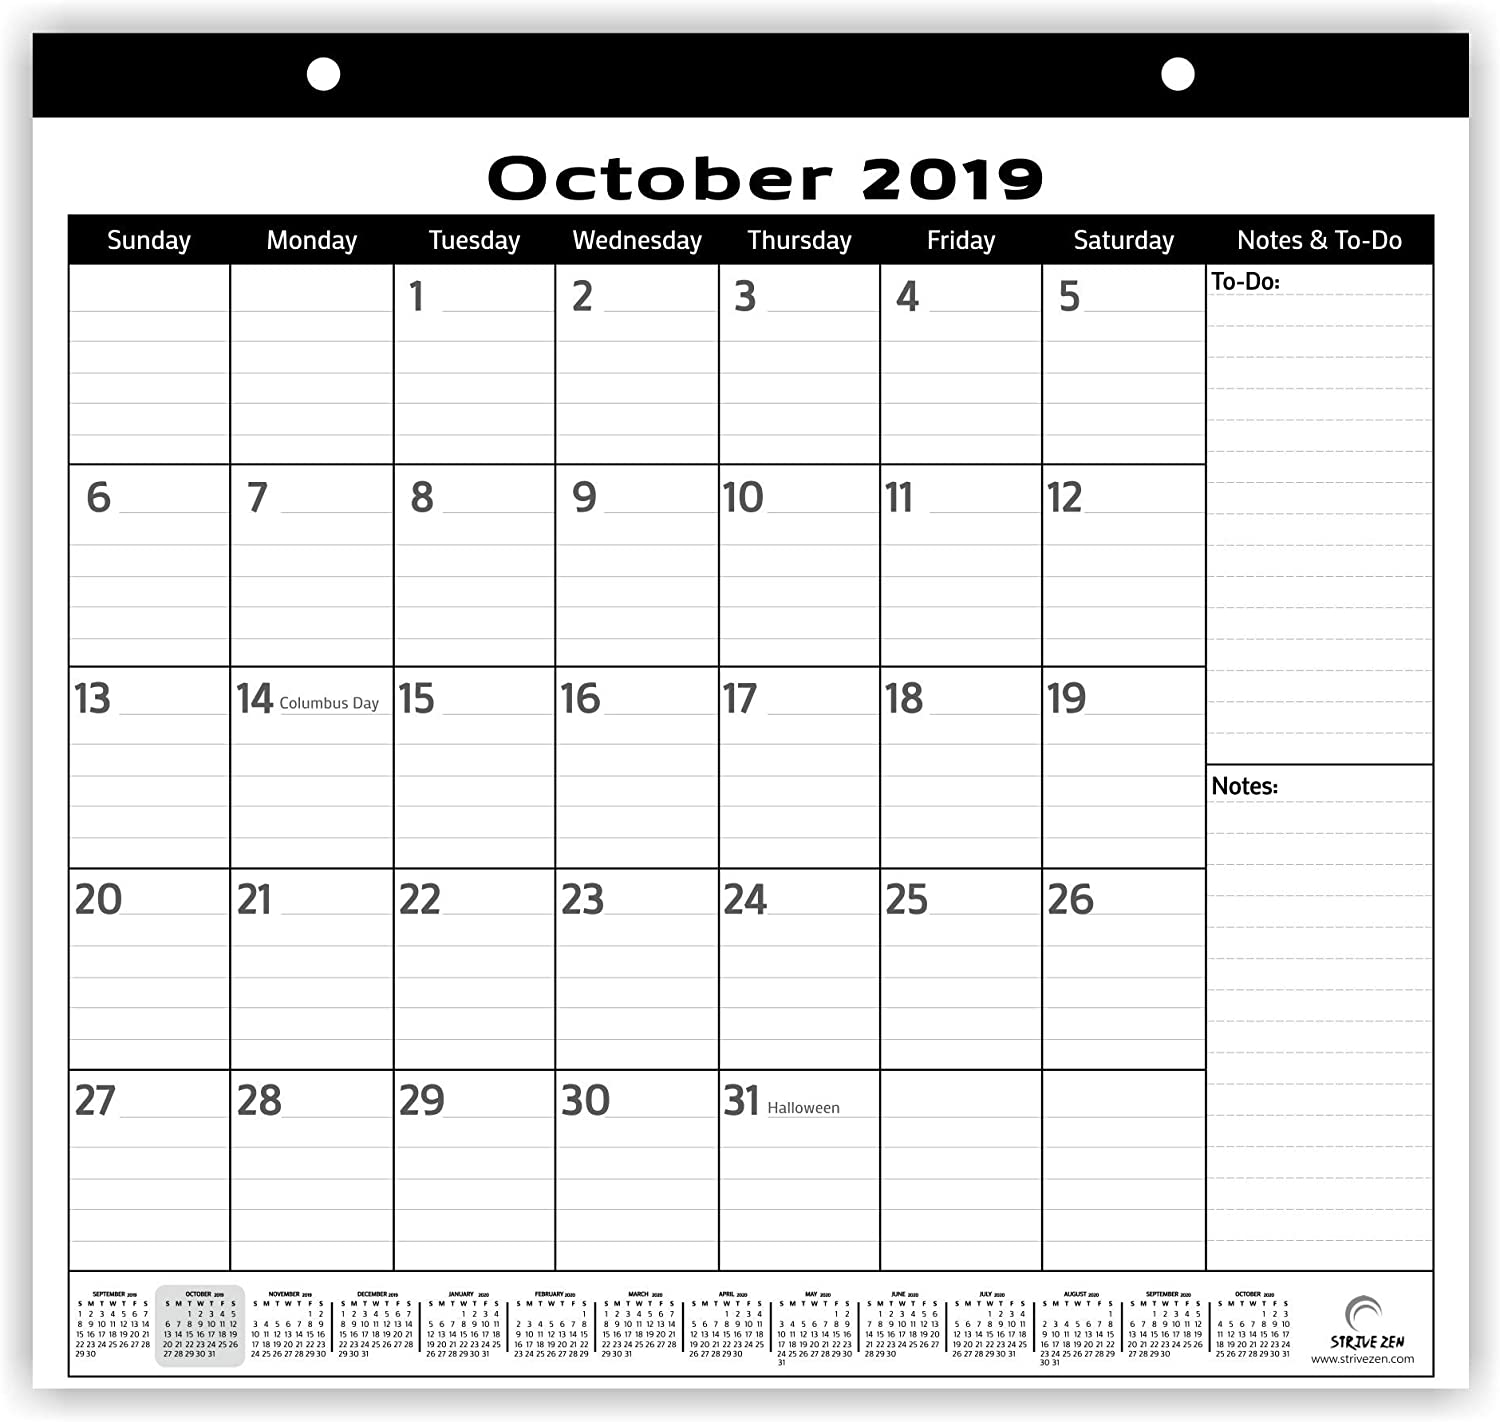 Magnetic Fridge Calendar 2019-2020 by StriveZen, 2 Strong Magnets for Refrigerator, Monthly October 2019 -December 2020, 10x10 Inch, Desktop, Gift, Teacher Family Mom Office (Minimalist)